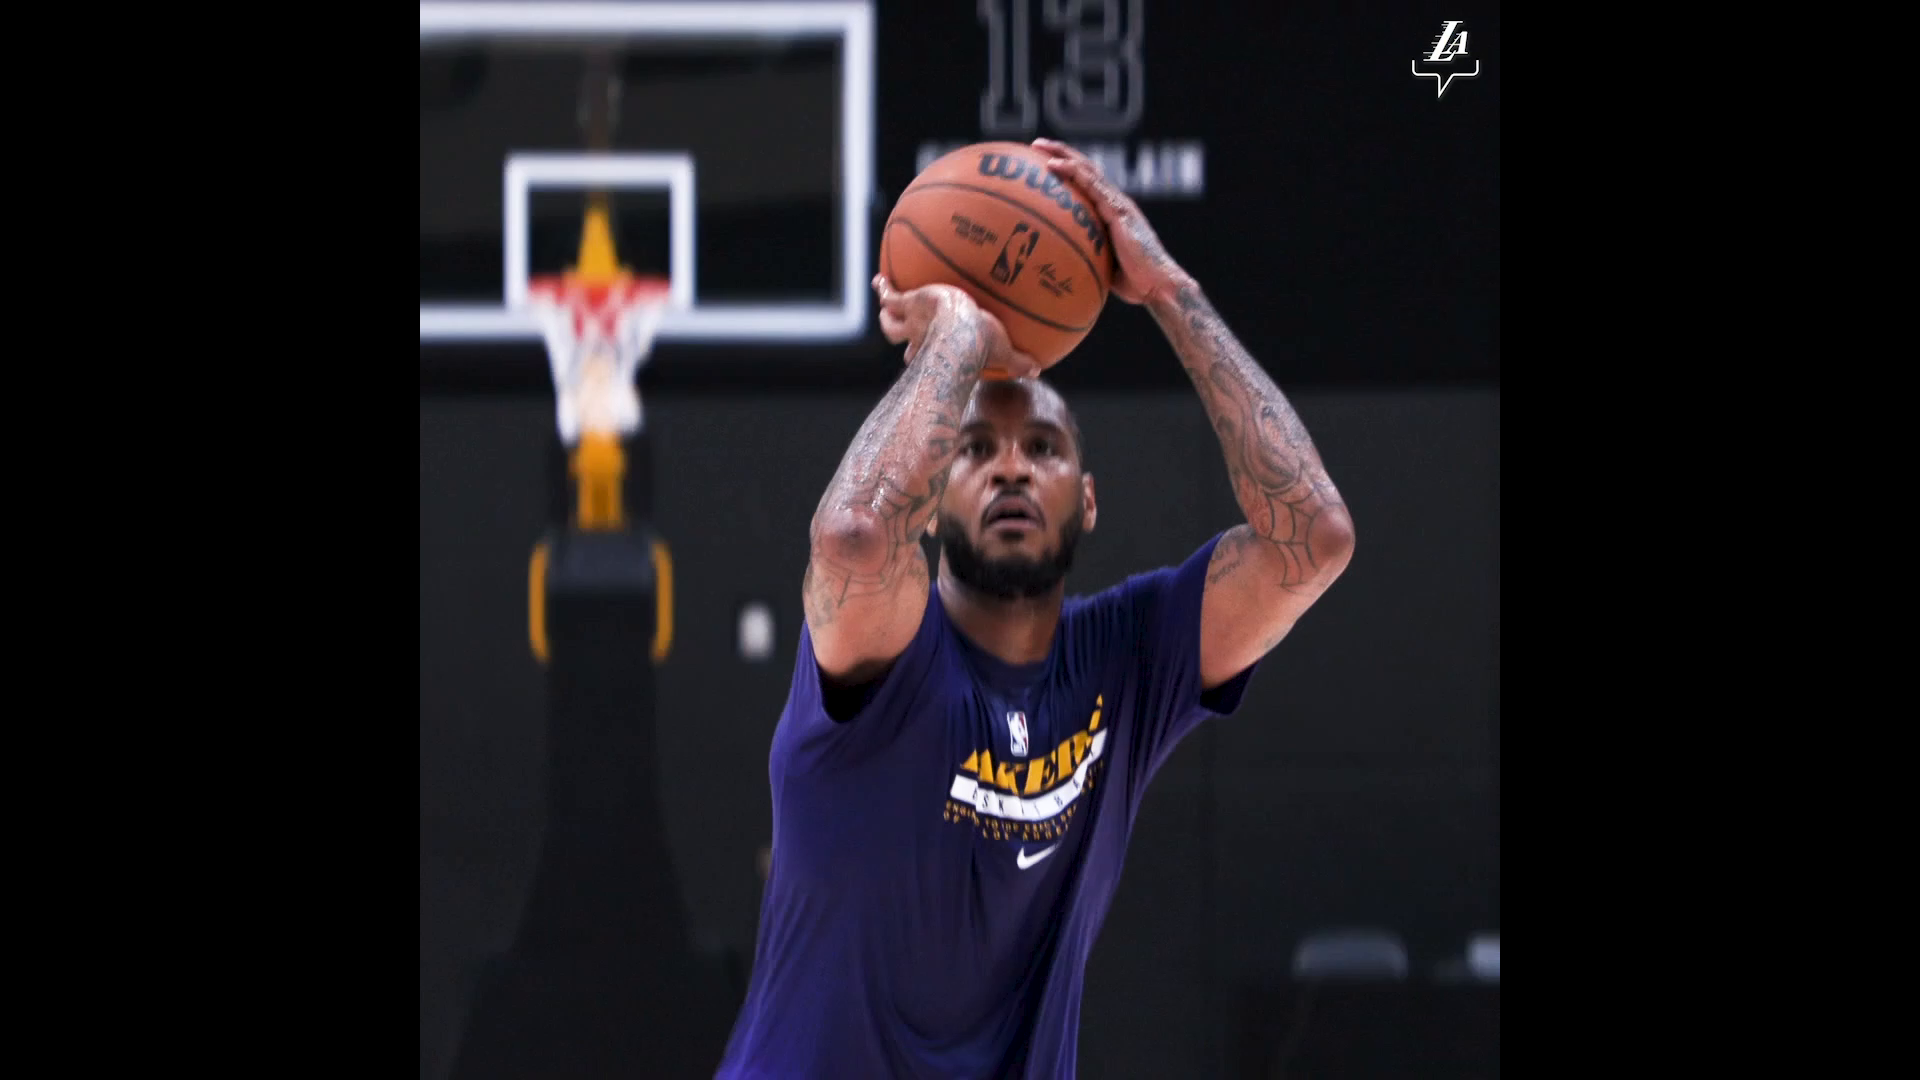 Melo getting buckets in the Purple and Gold